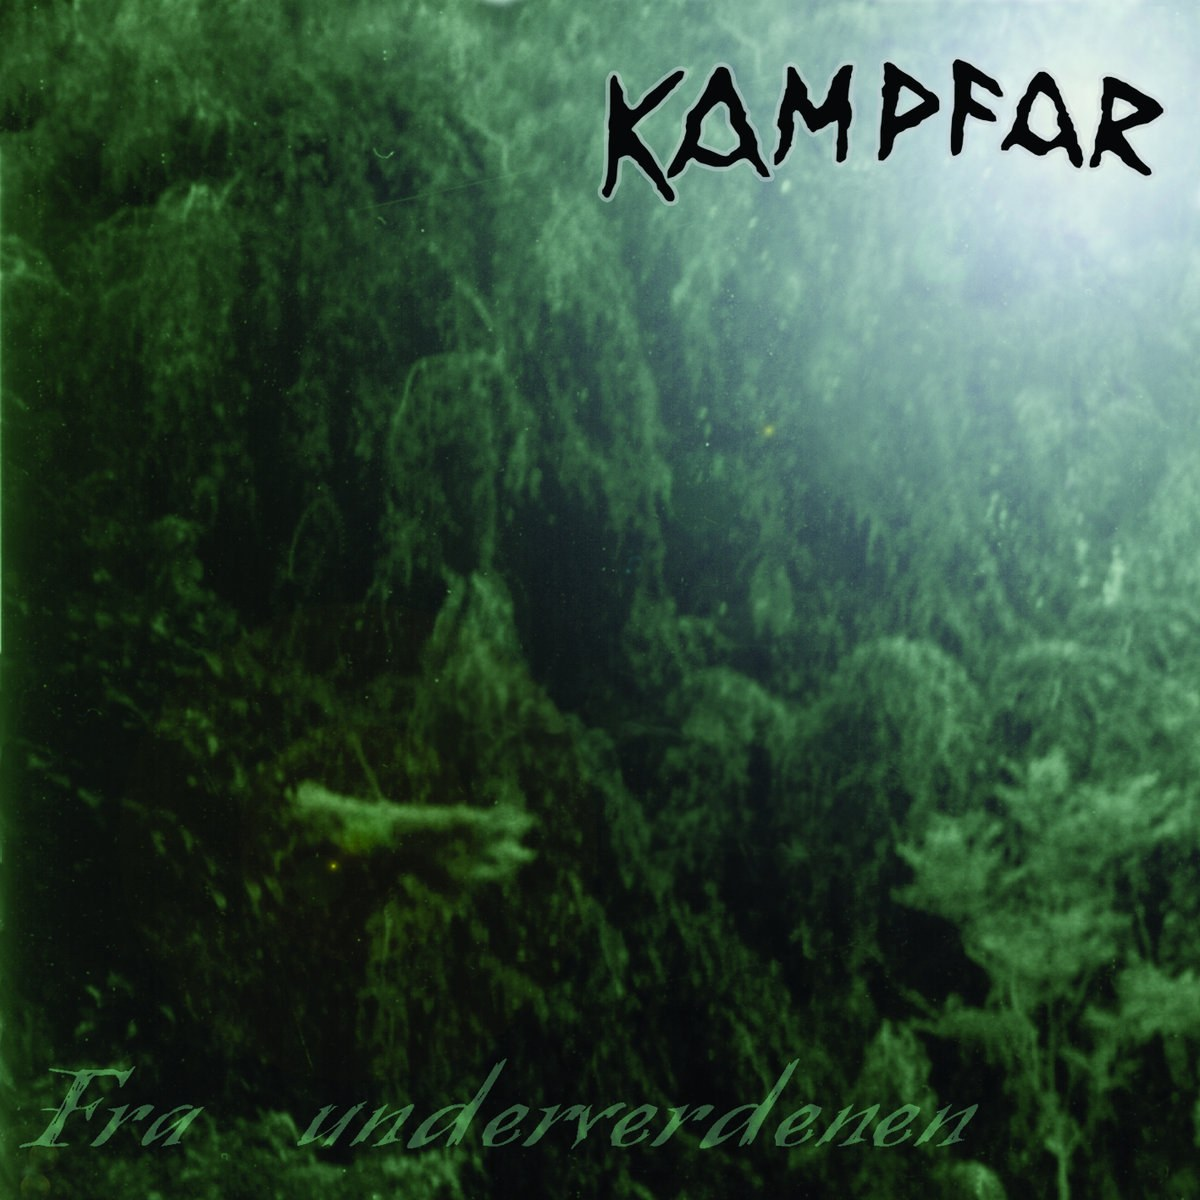 Review for Kampfar - Fra Underverdenen